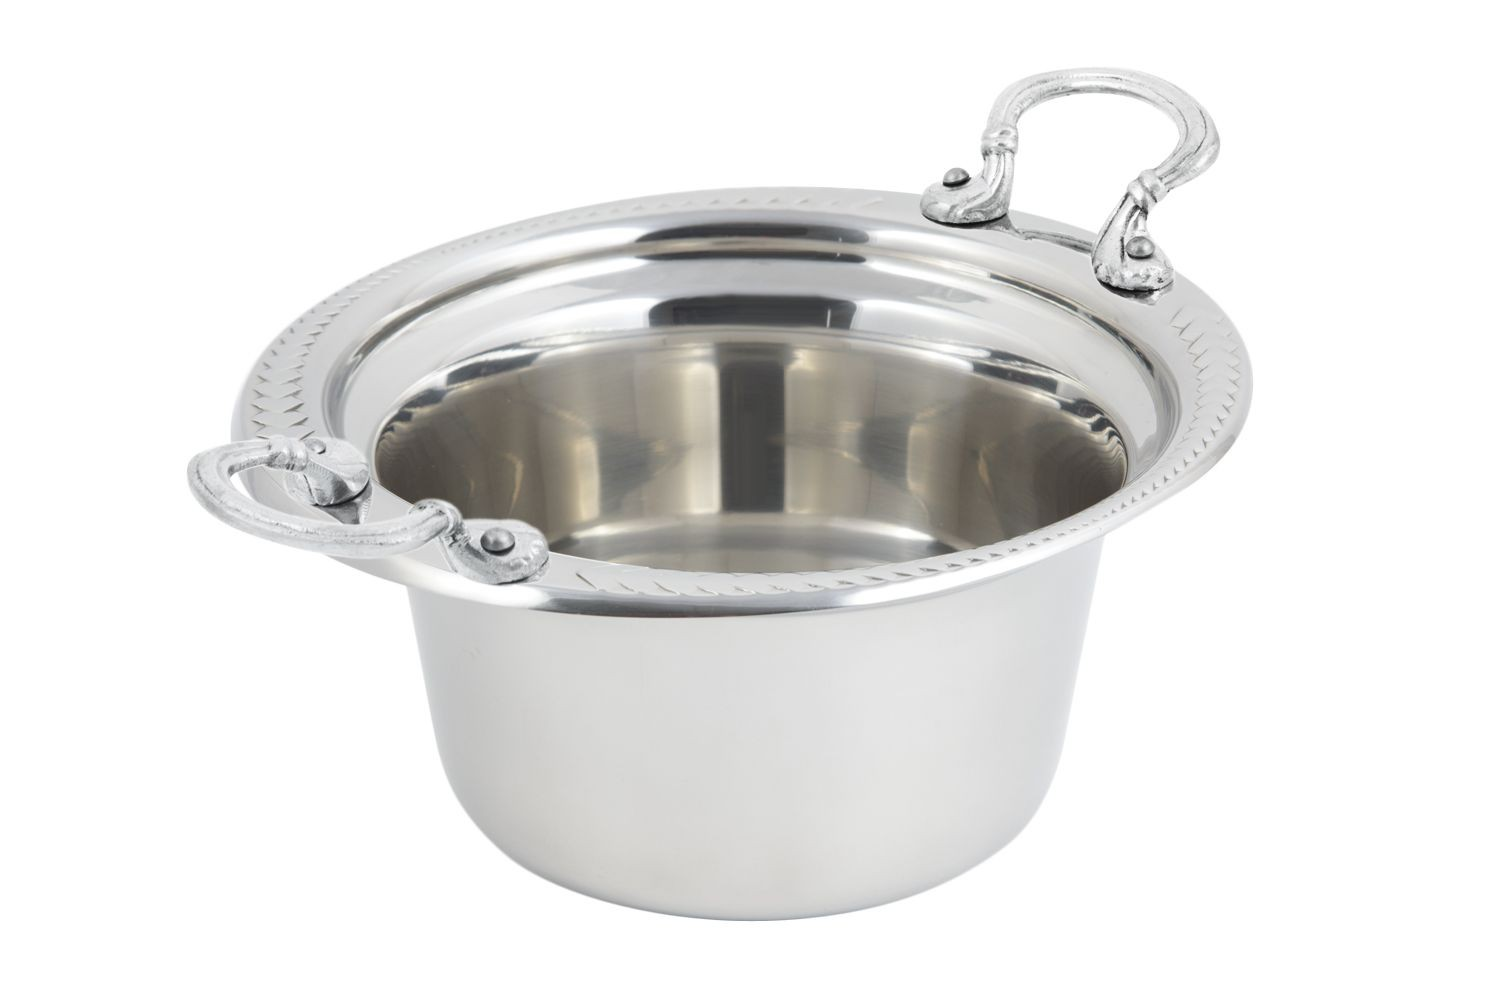 Bon Chef 5450HRSS Laurel Design Casserole Dish with Round Handles, 2 Qt.